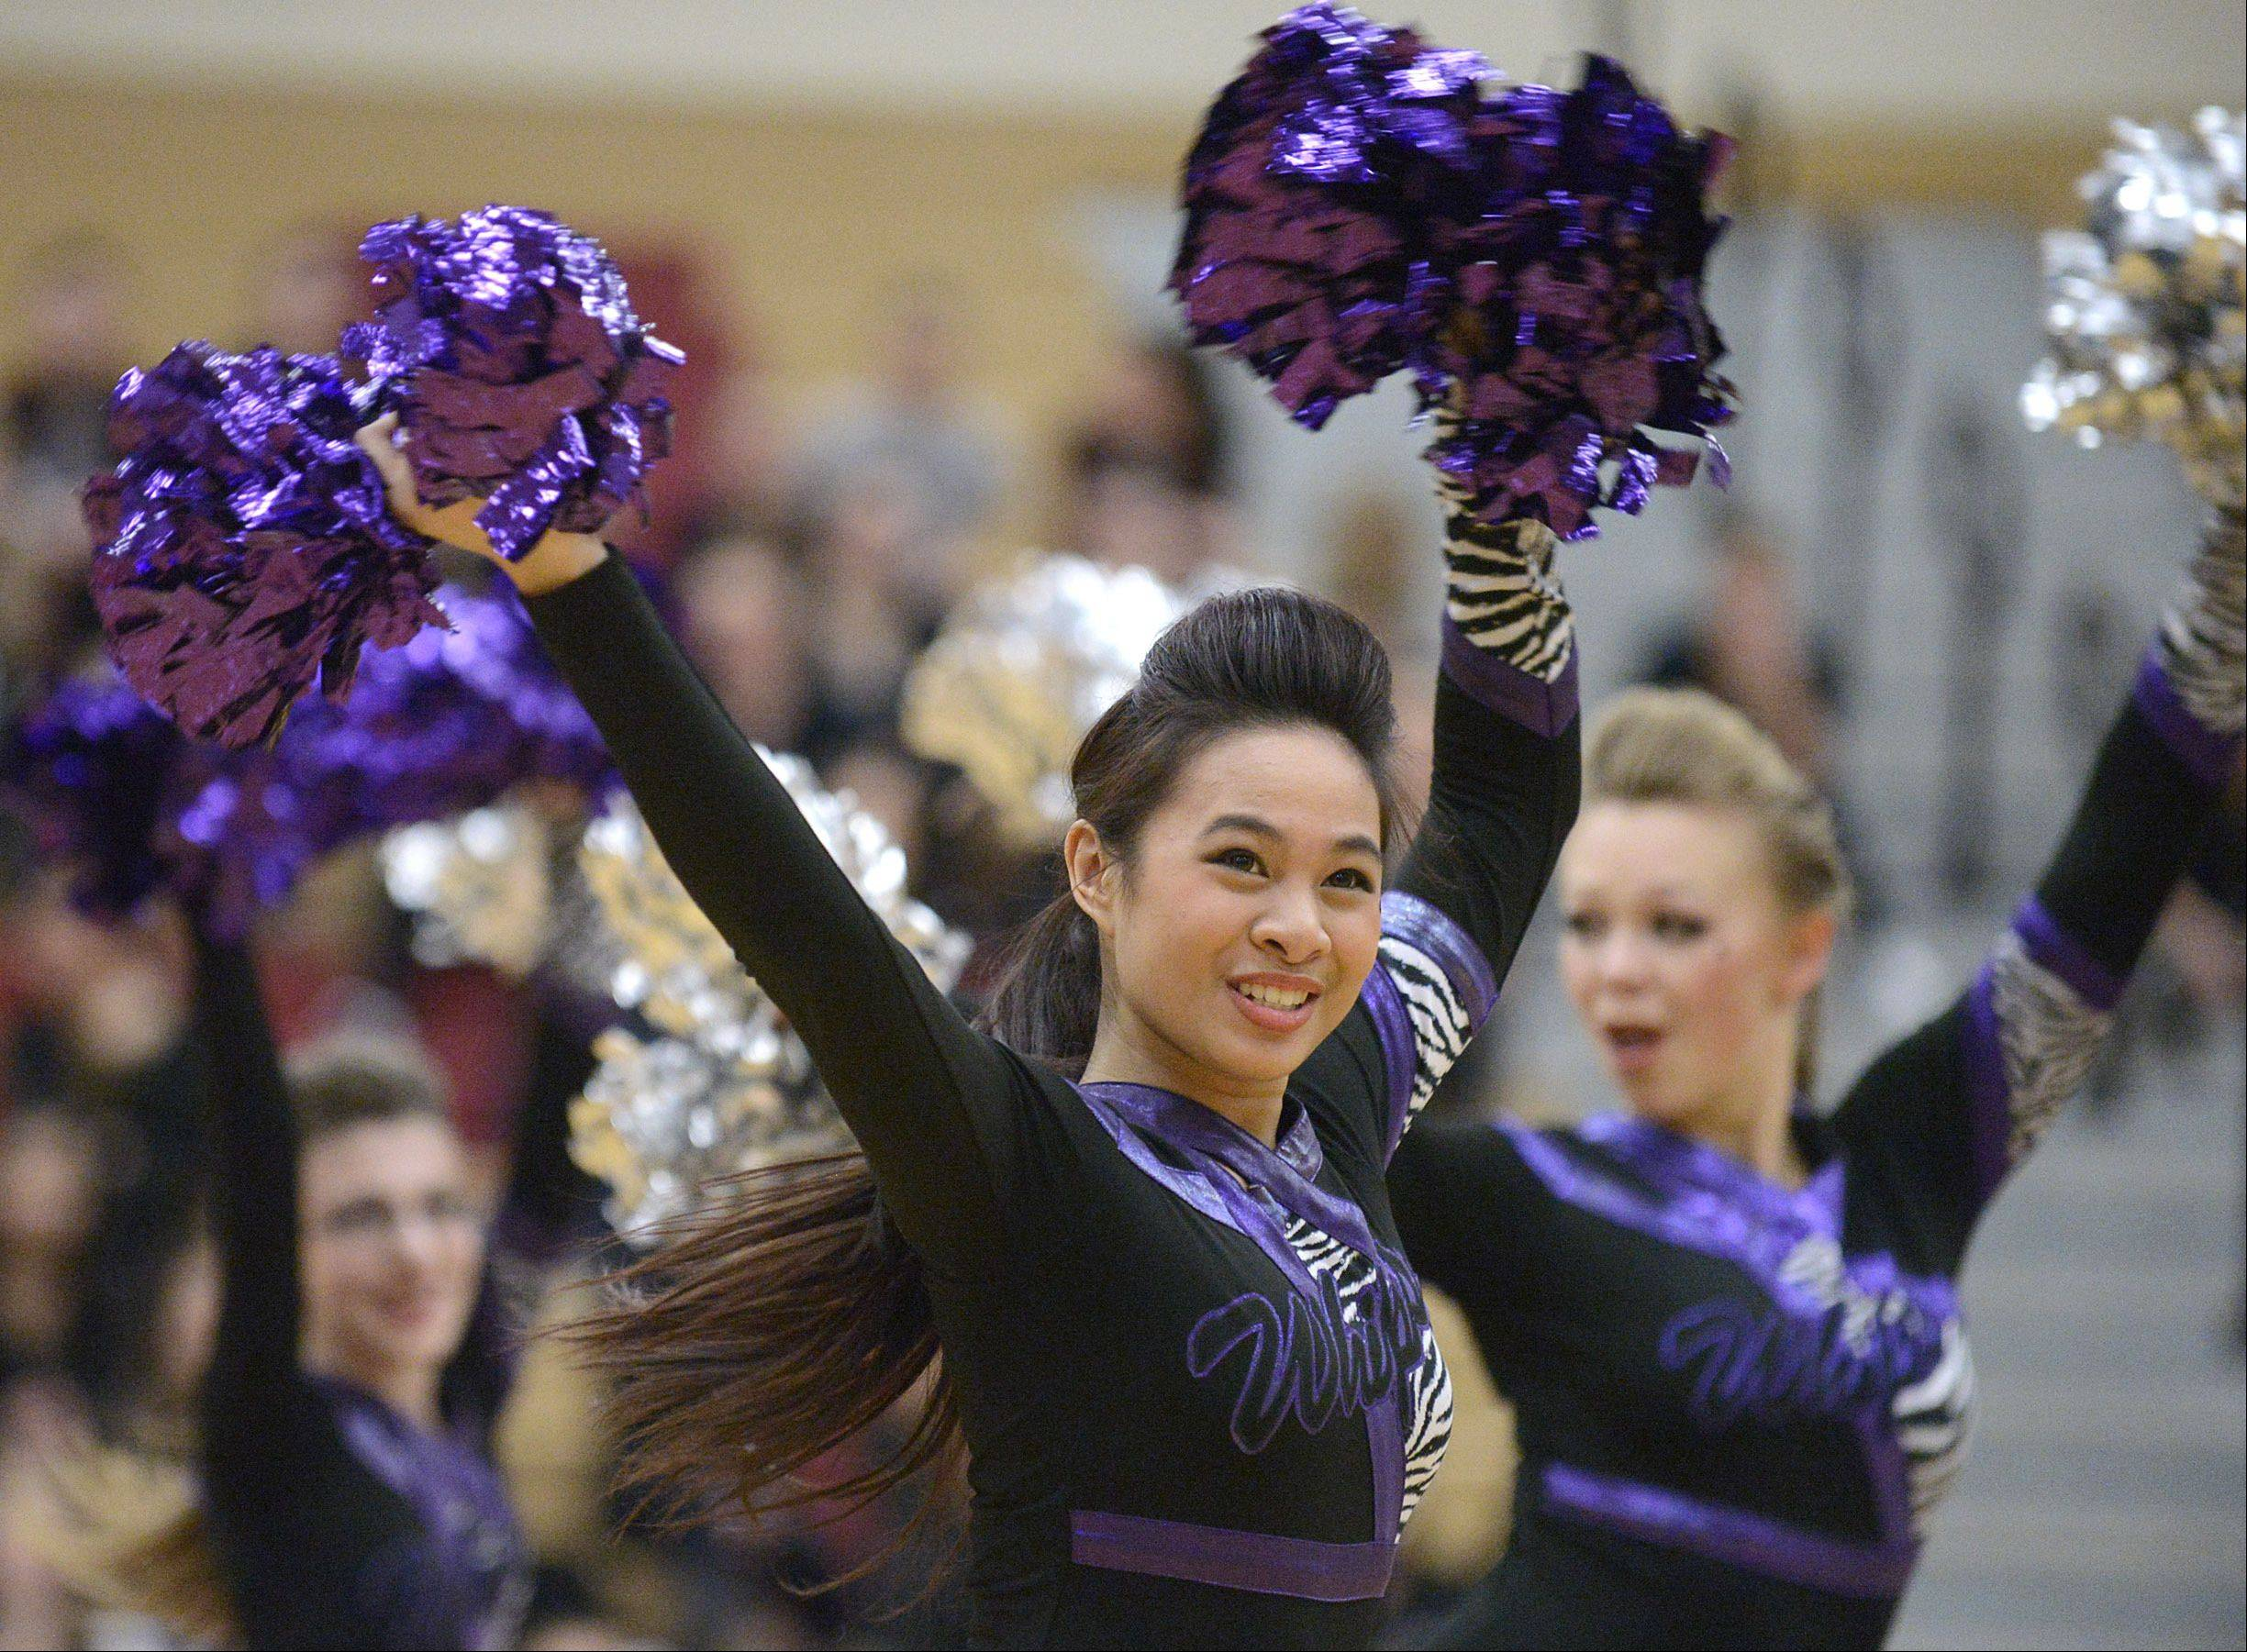 Mara De Guzman, 18, performs with the Hampshire High School team in the IHSA 2A competitive dance sectionals at Huntley High School on Saturday.